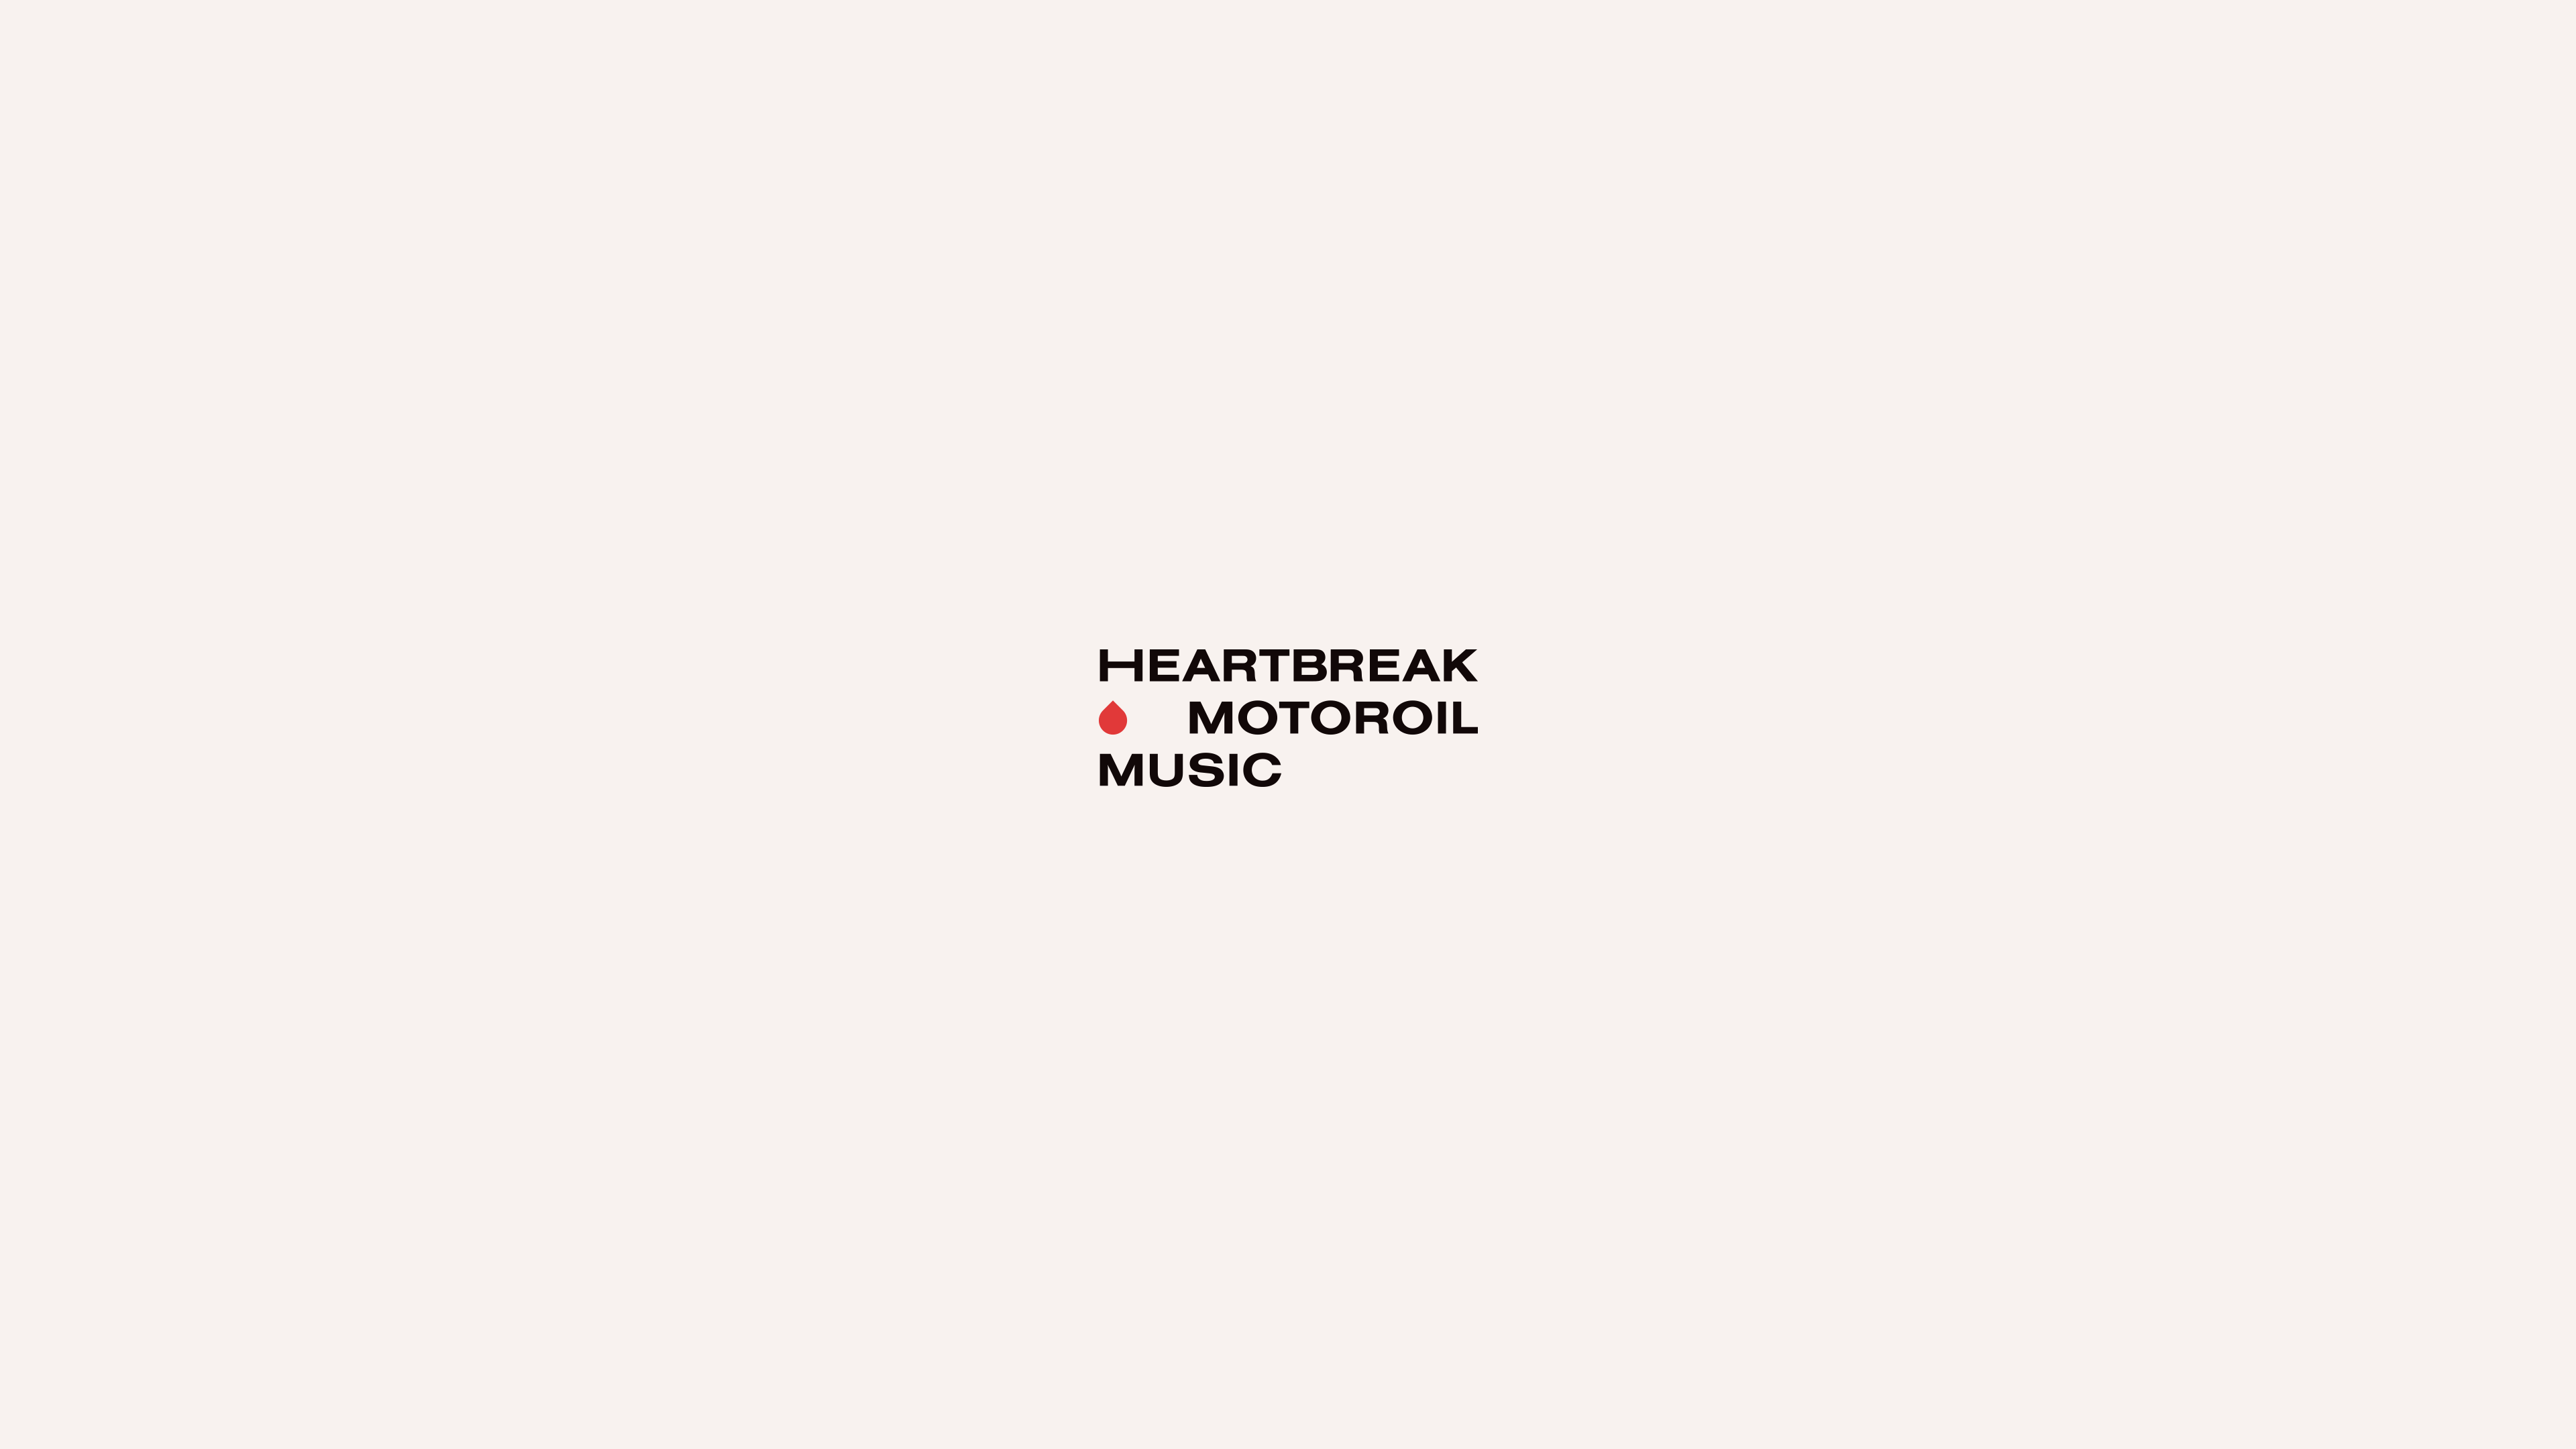 Heartbreak Motoroil Music logo